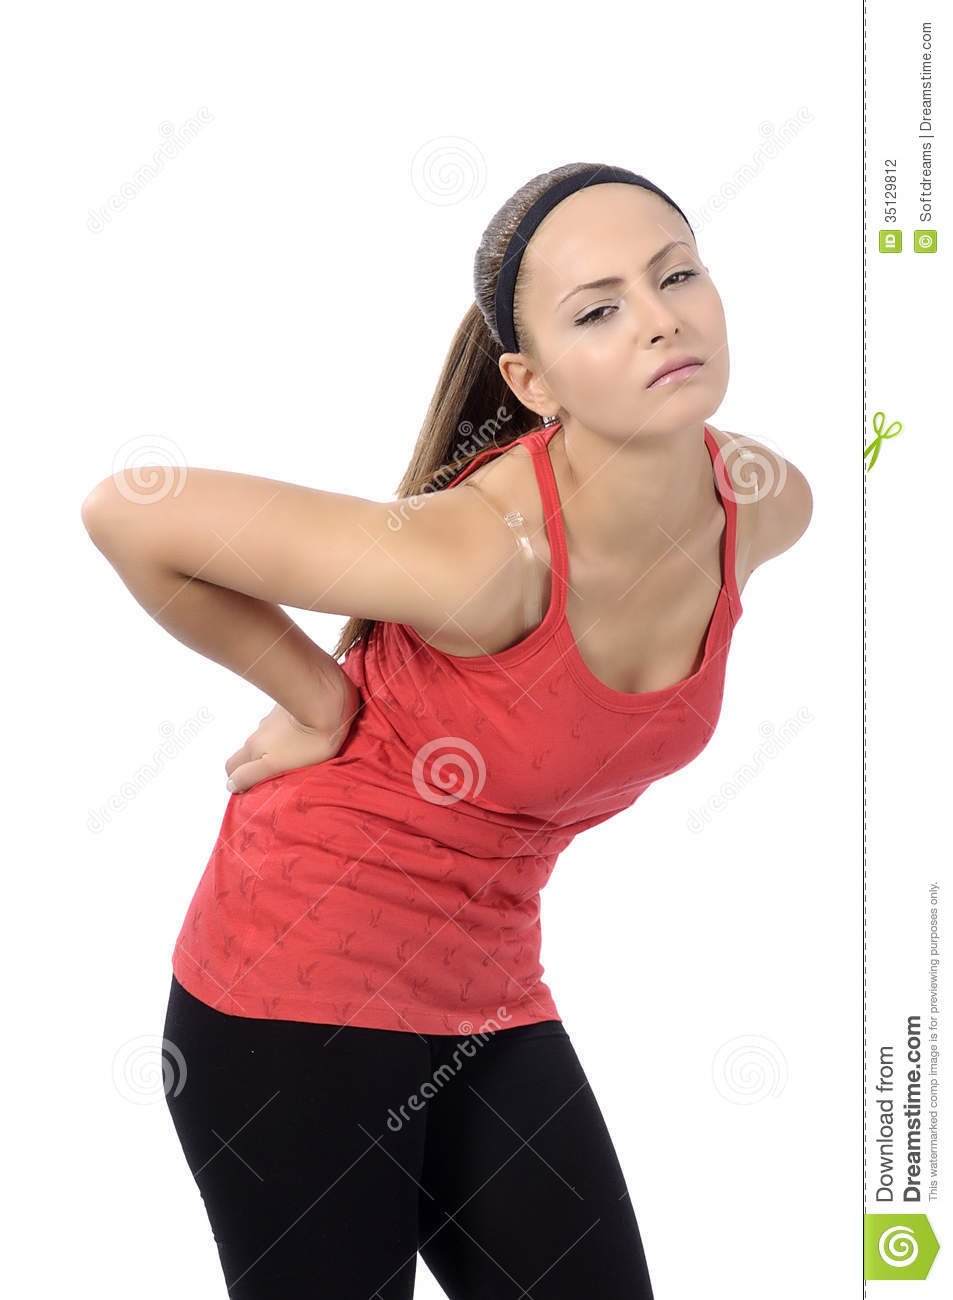 Woman bends over and flinches in pain in her back. fitness concept.